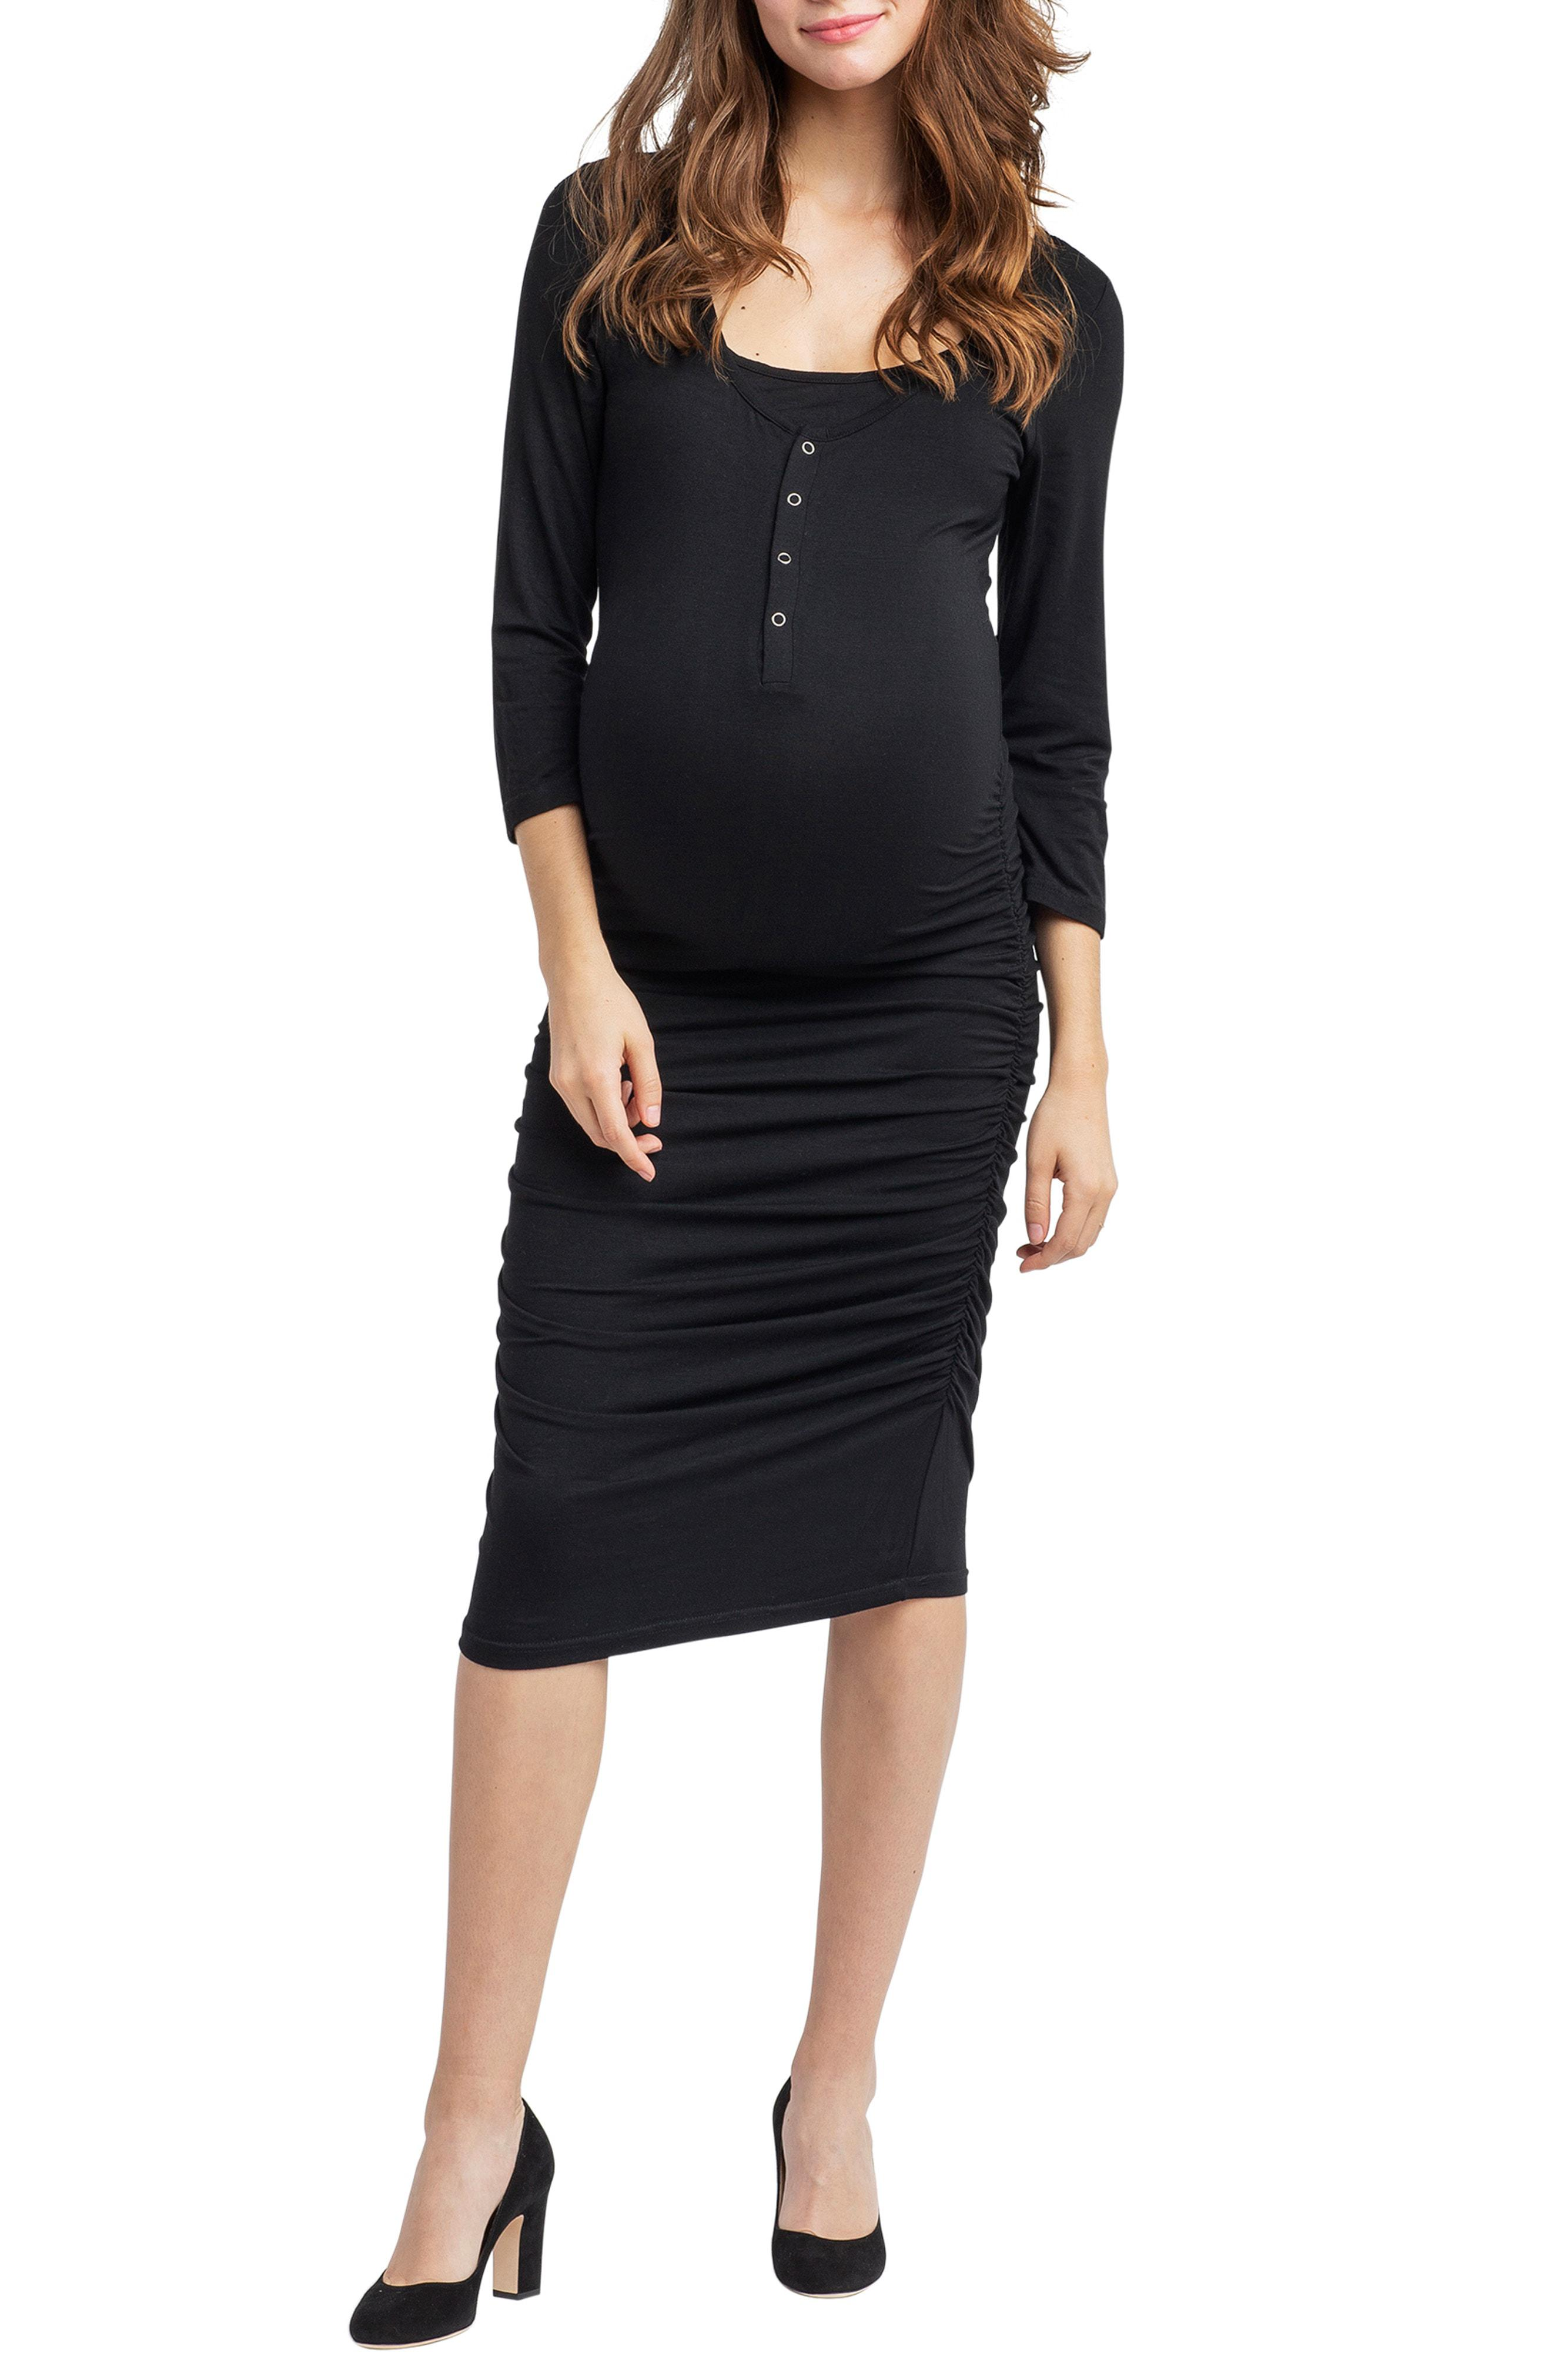 ea29a47bc5d Lyst - Nom Maternity Nom Henley Maternity Dress in Black - Save 31%